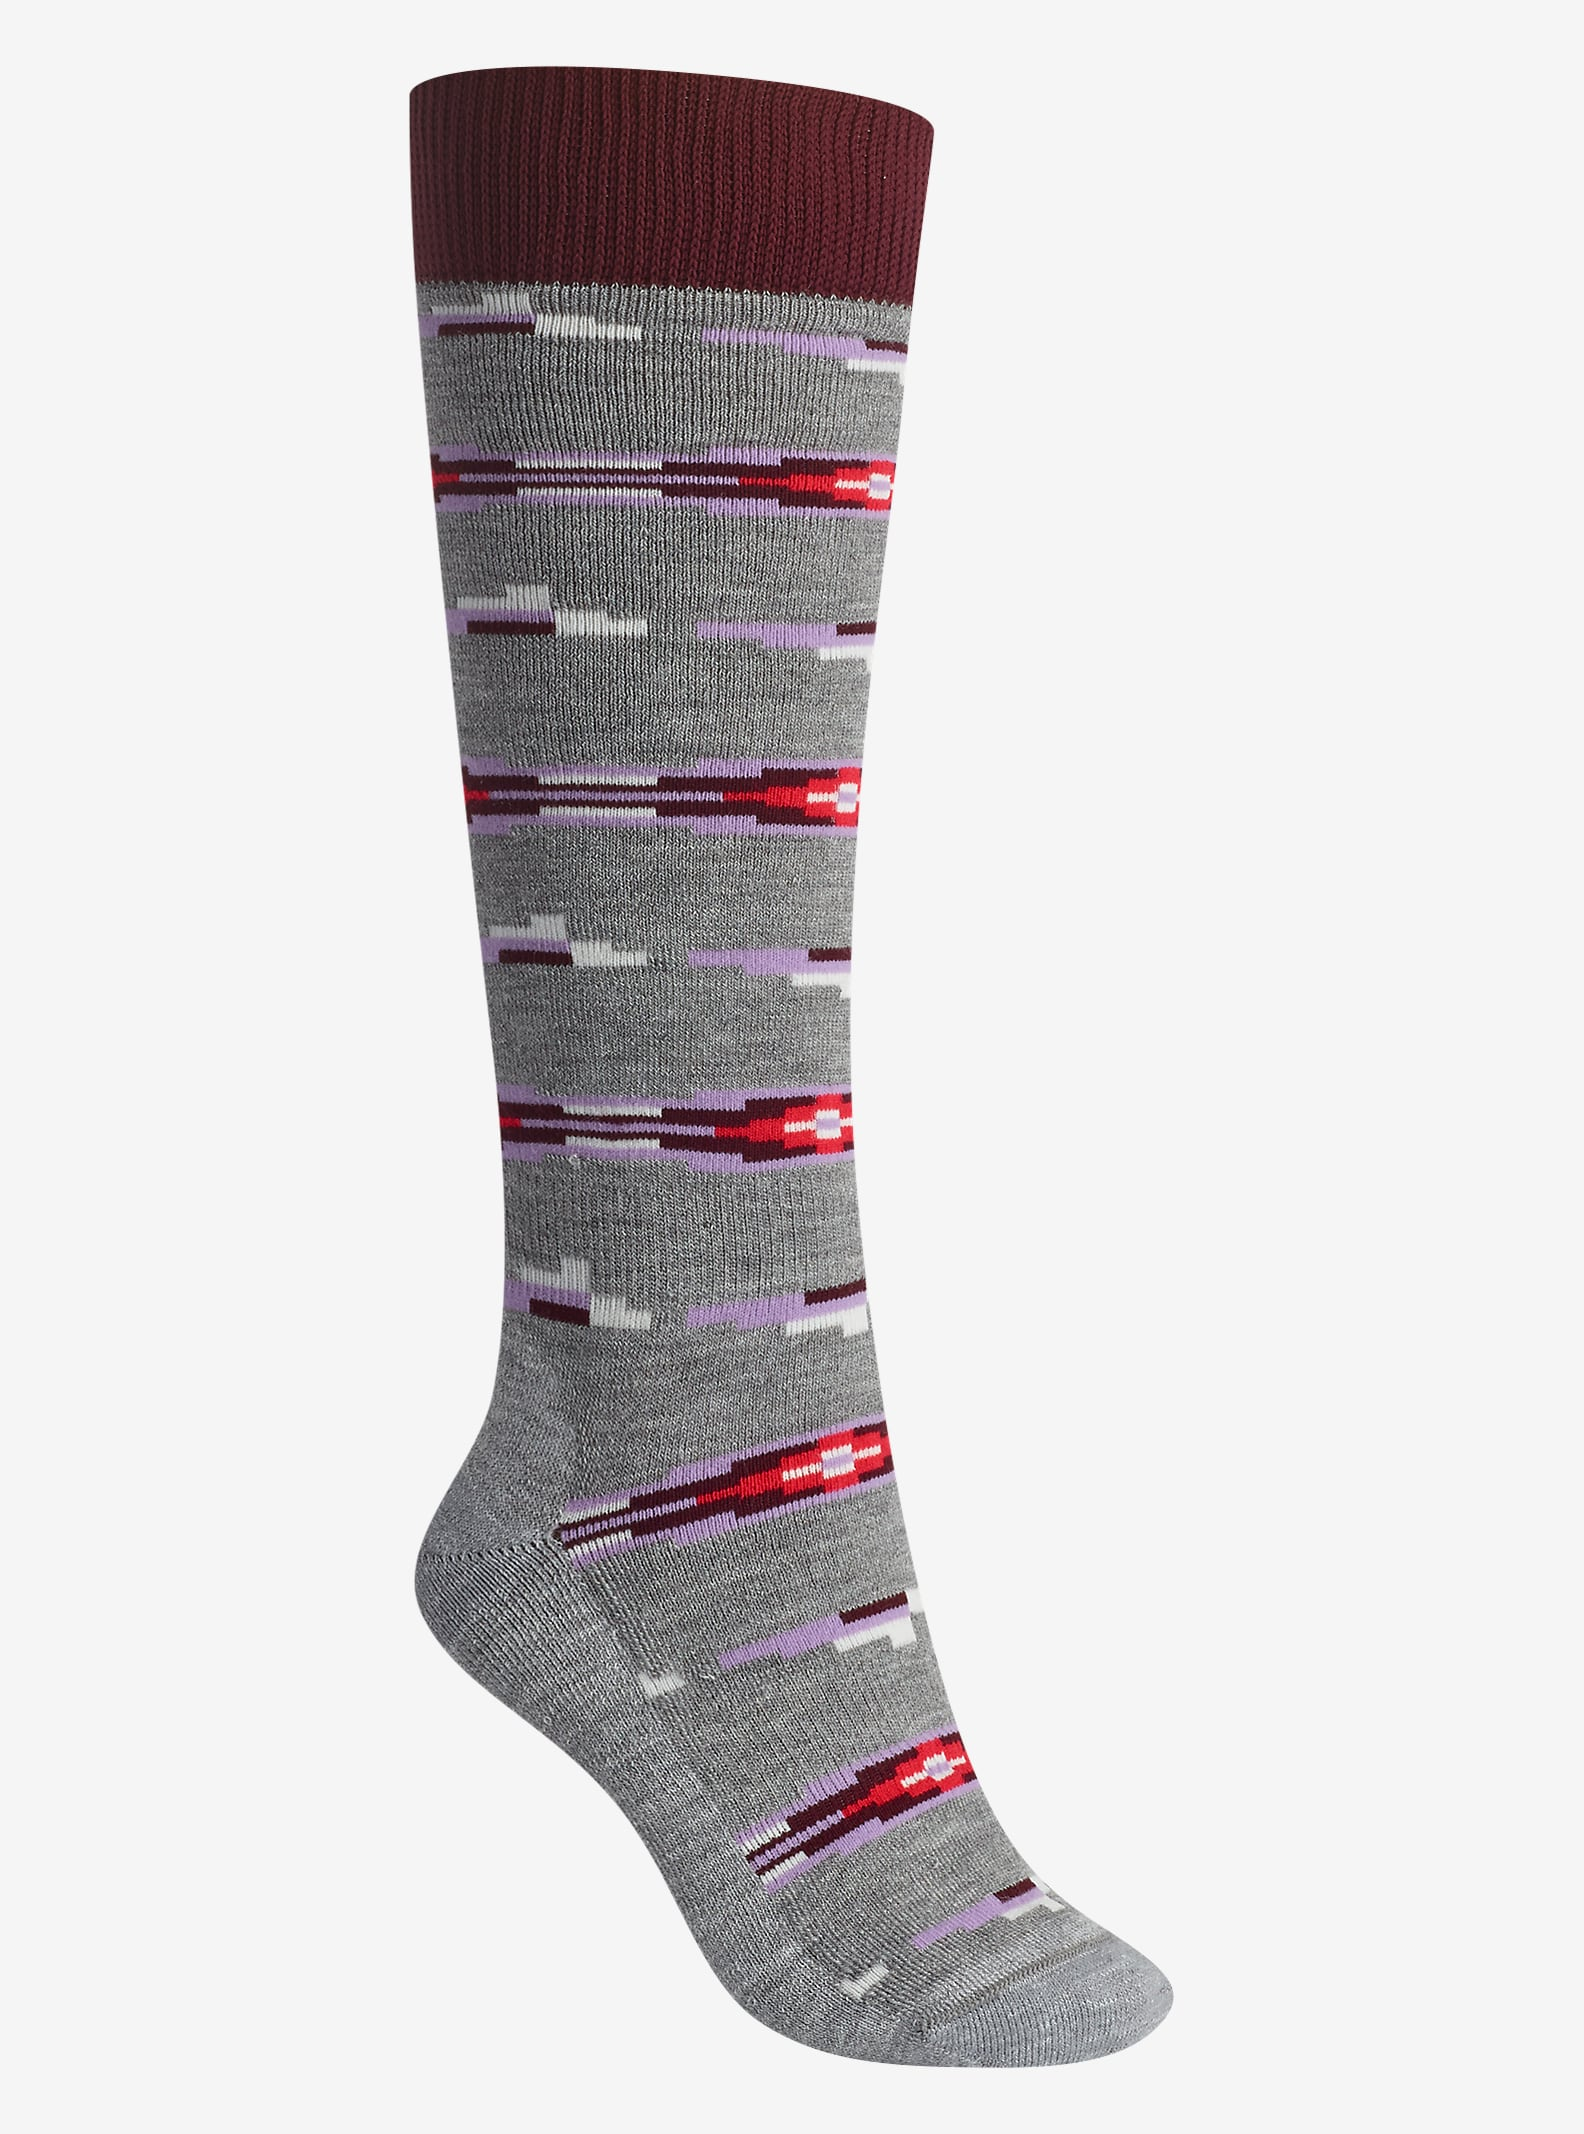 Burton Shadow Sock shown in Heather Iron Gray